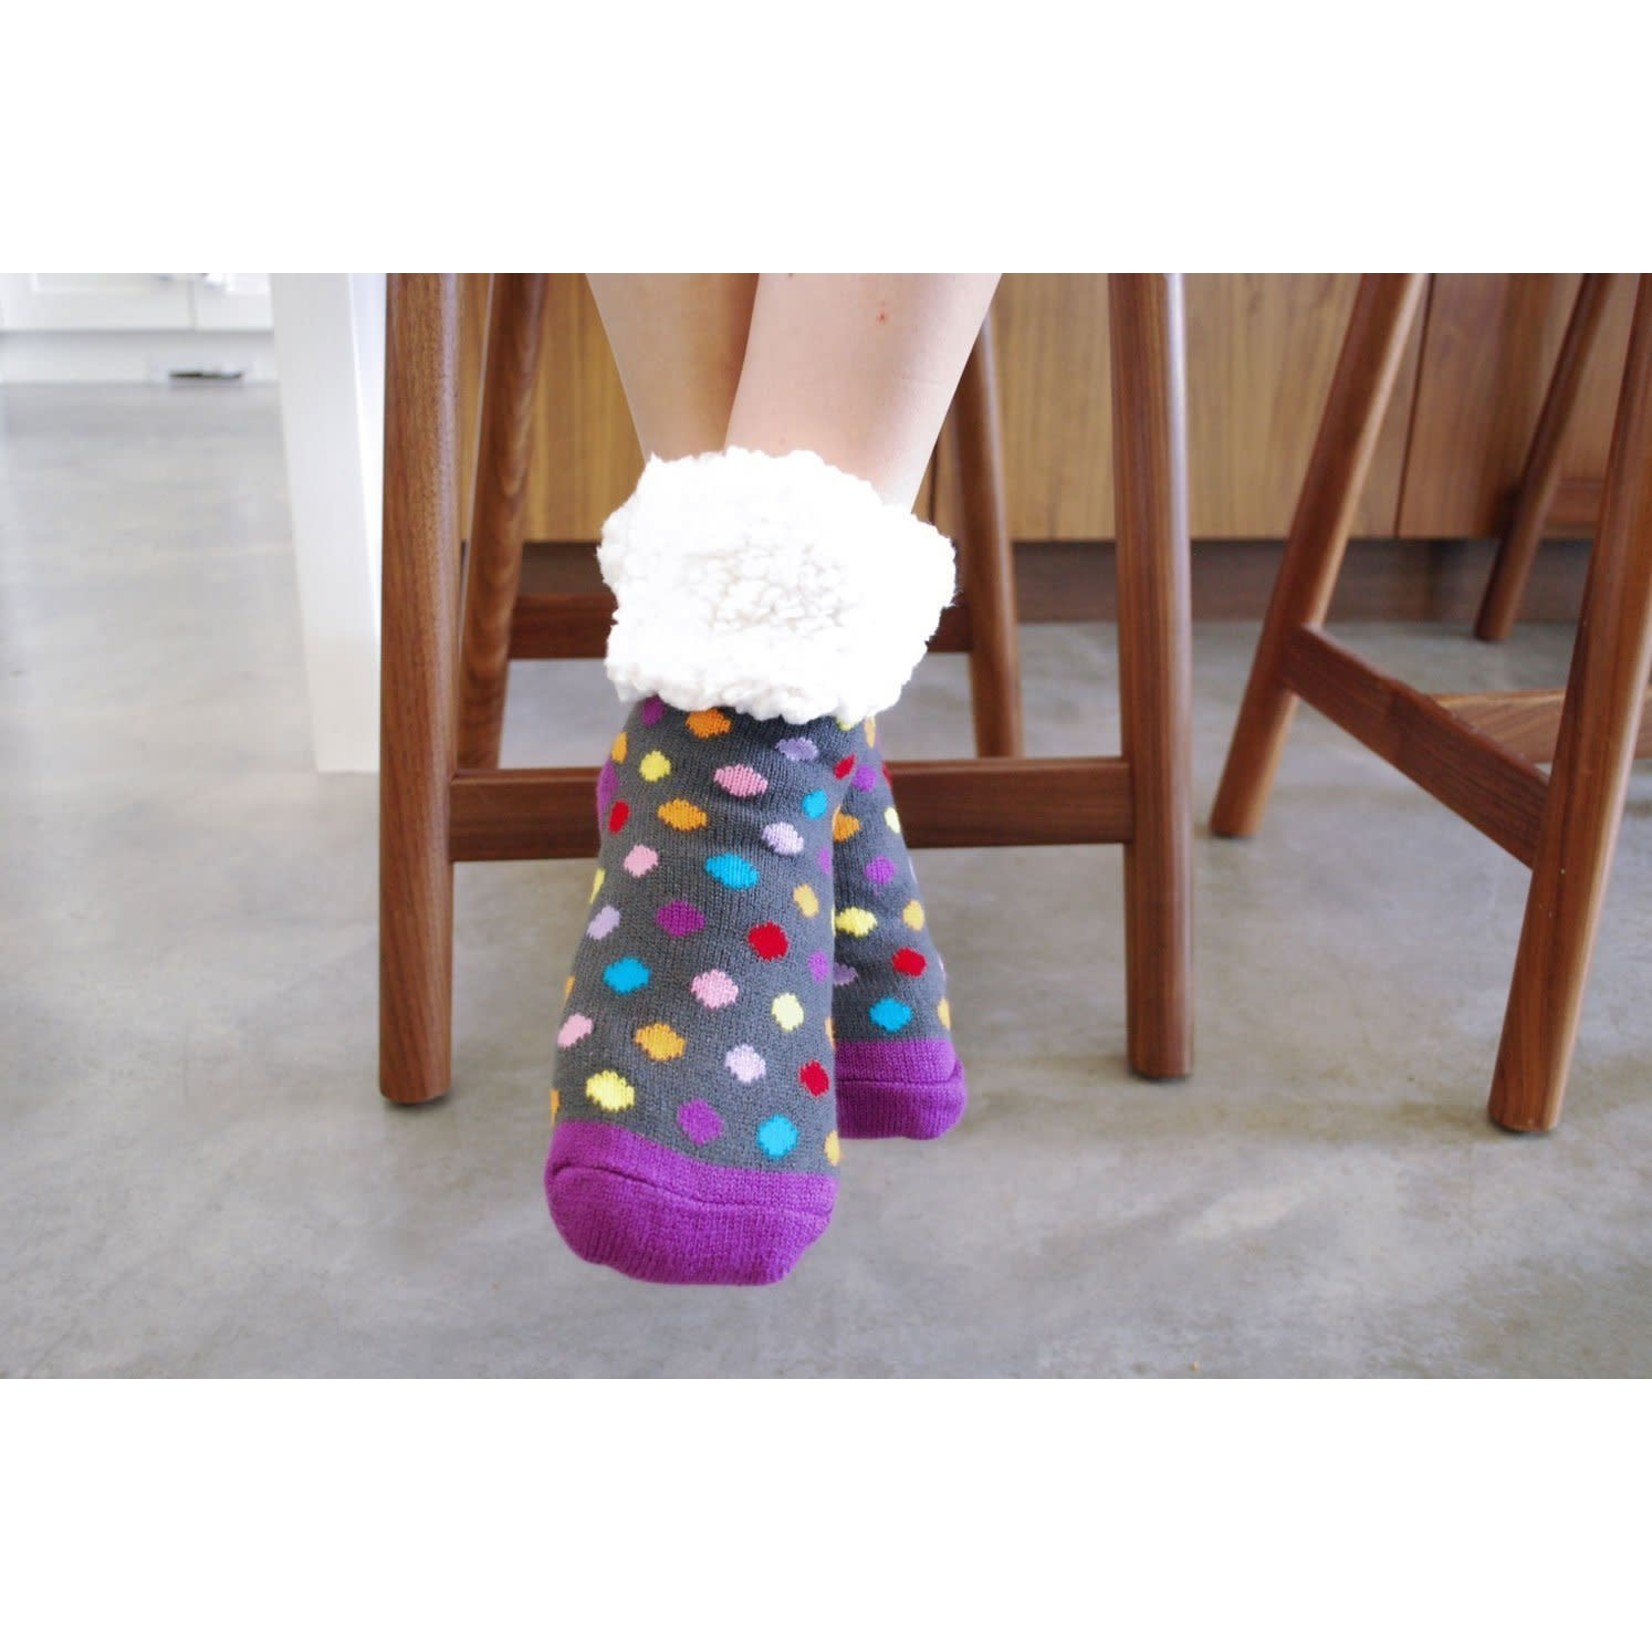 Classic Slipper Socks w/ White Fuzzy Cuff - Polka Dot Multi